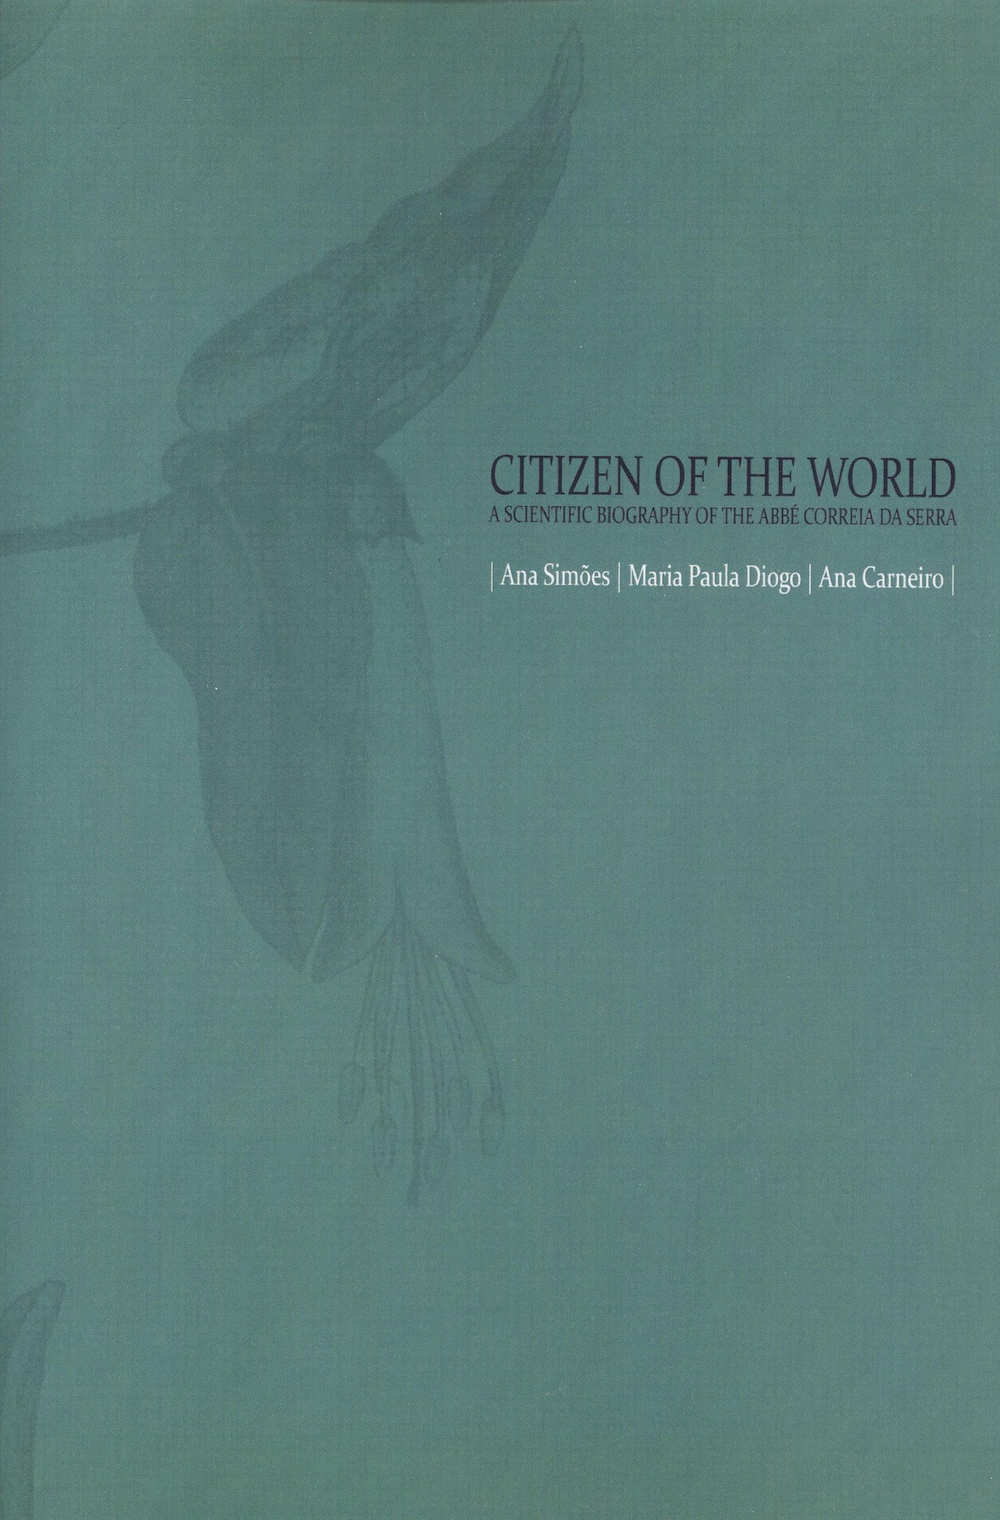 Citizen of the World — A Scientific Biography of the Abbé Correia da Serra, Capa